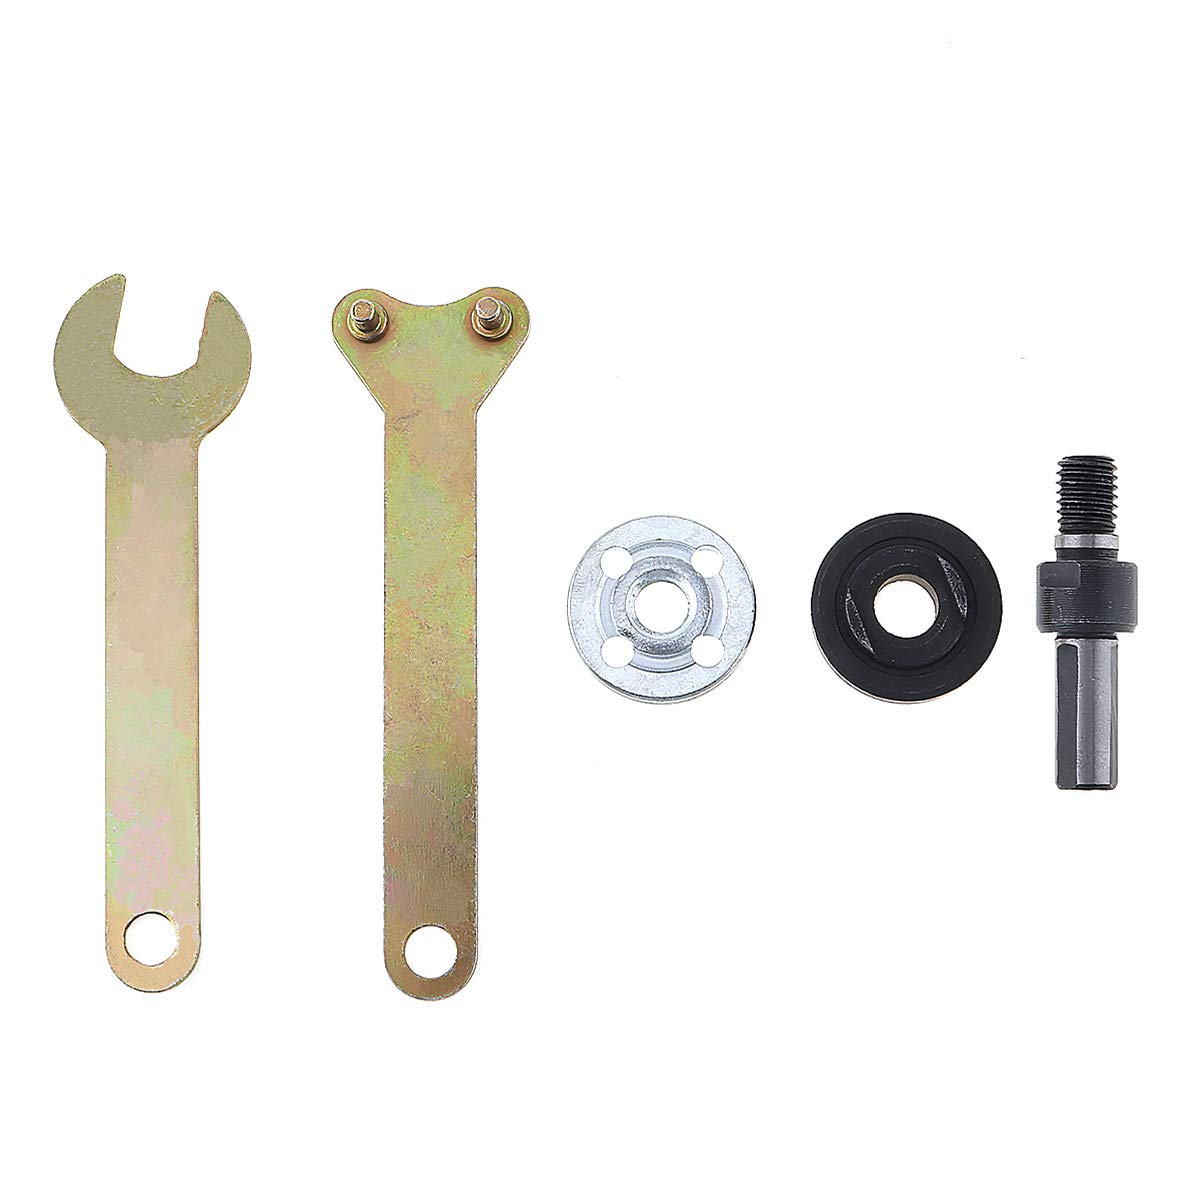 ChgImposs 5 in 1 Angle Grinder Accessories with Connecting Rod and Small Wrench for Conversion Angle Grinding Tool FLXDirect